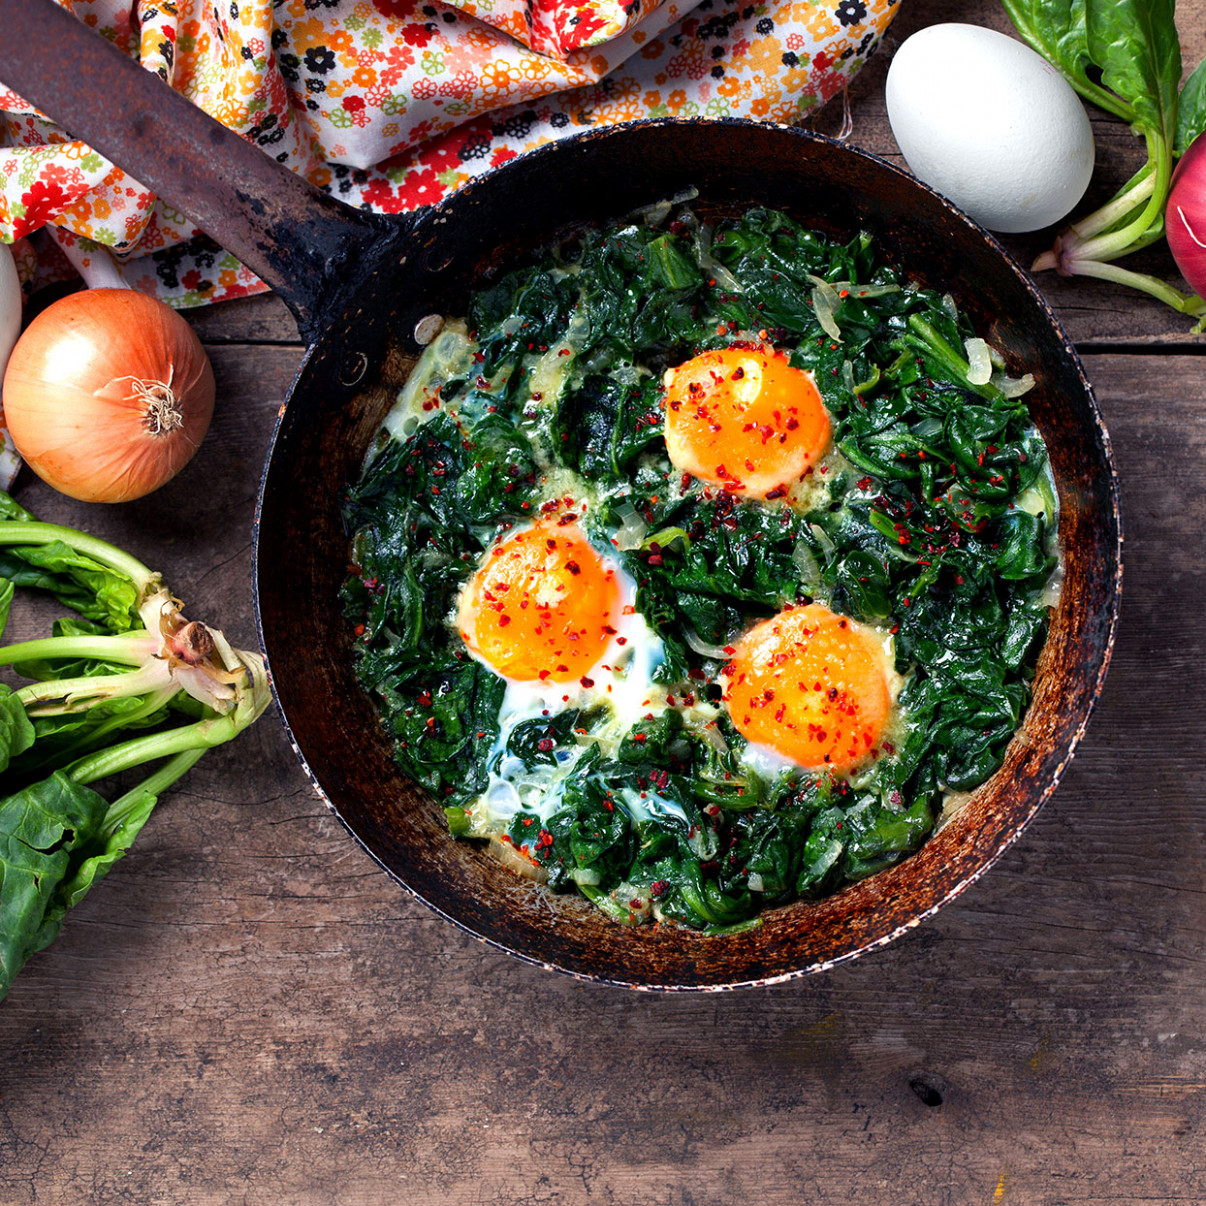 Healthy Breakfasts for Weight Loss | Shape - healthy dinner recipes to lose weight